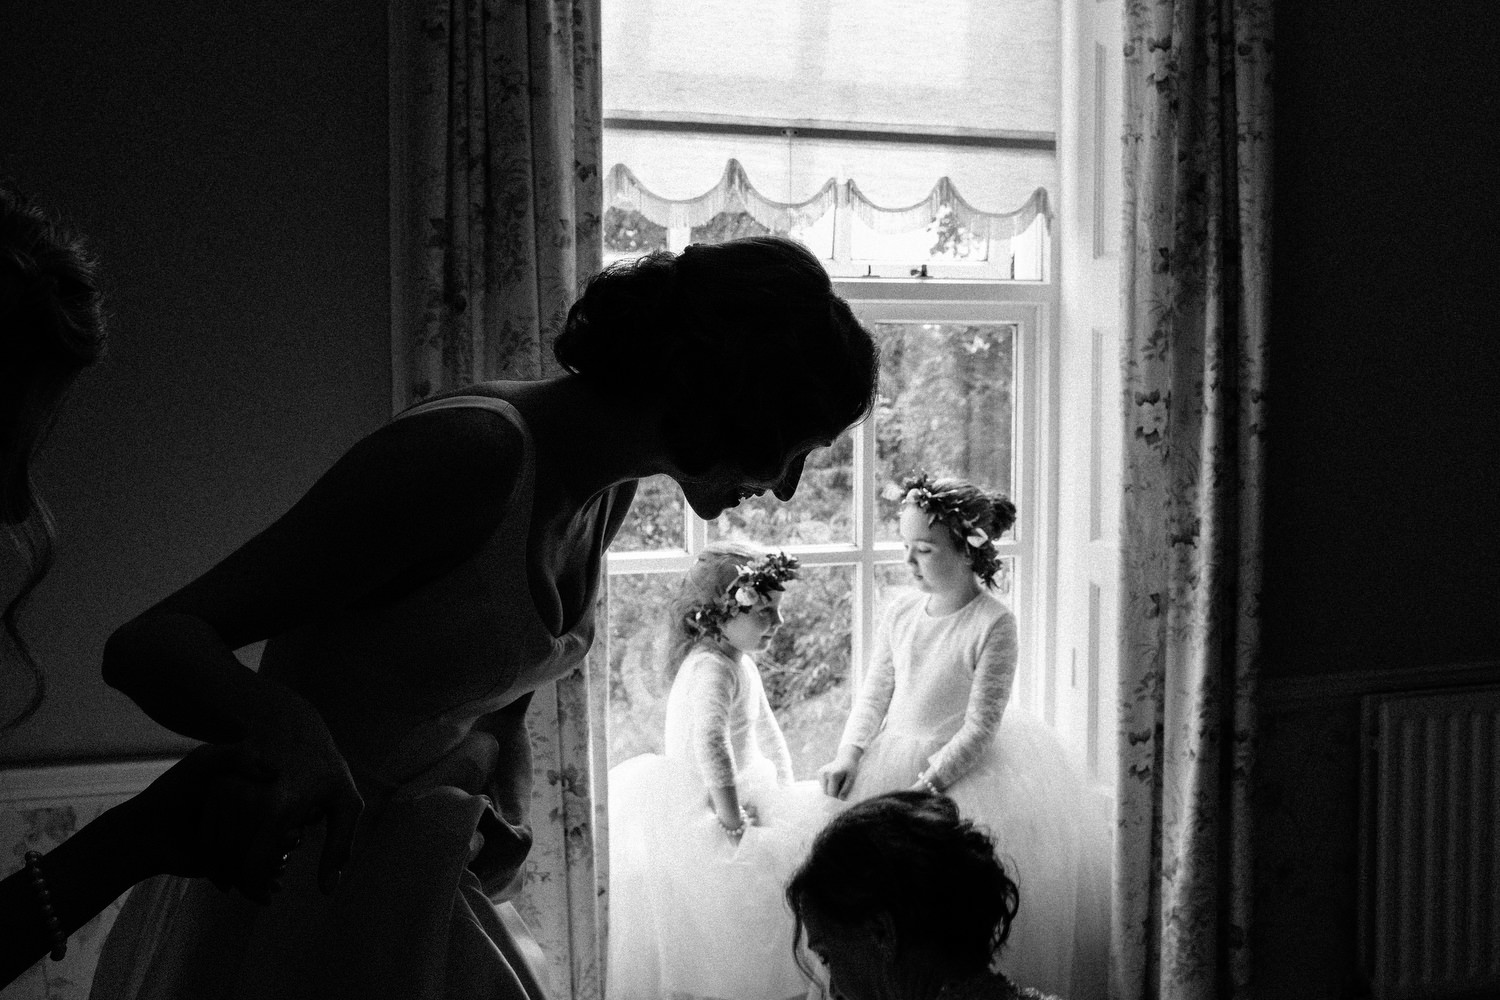 000000000000000000000078_bride_style_preparation_vintage_Hair_dress_photography_david_mcclelland_ireland_makeup_castle_hollywood_kinnity_wedding_photographer_fujifilm